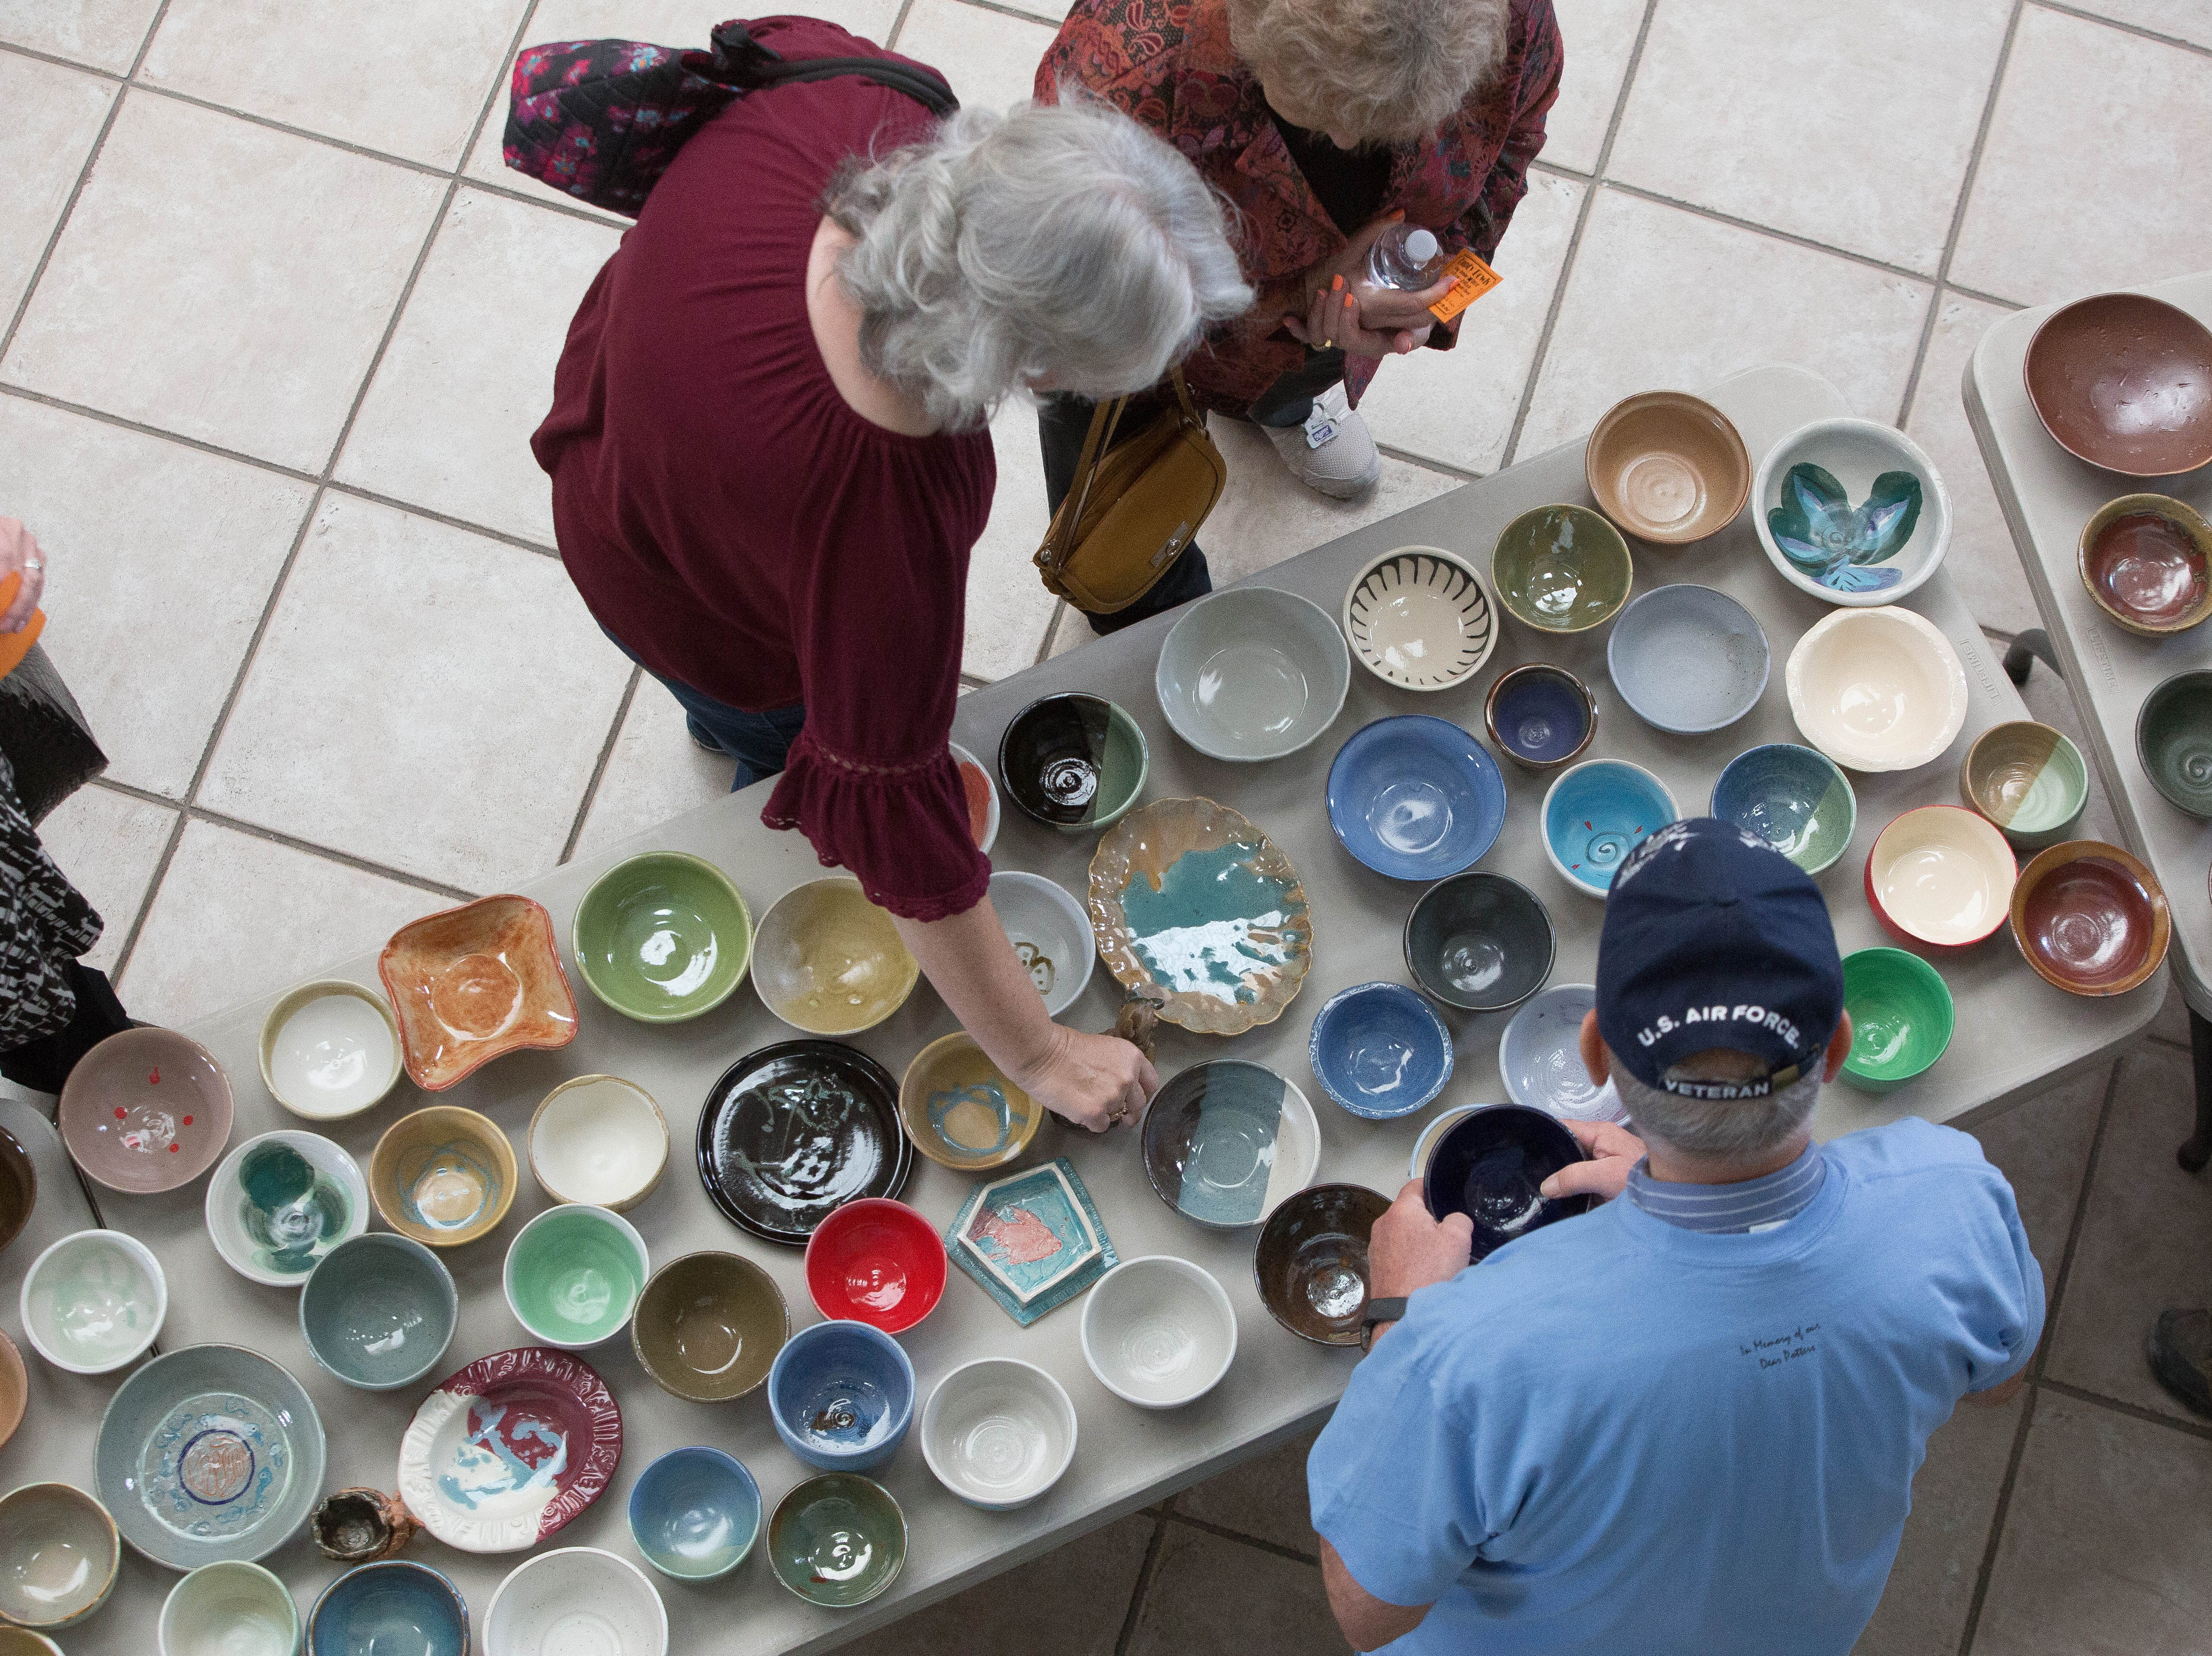 El Caldito Soup Kitchen and the Potters'Guild of Las Cruces, hosted the 26th annual Empty Bowls event at St. Paul's UnitedMethodist Church, Friday October 19, 2018. Las Crucens bought tickets, looked through the multitudes of bowls made by the Potters Guild, and ate soups provided by more than 50 different local restaurants.